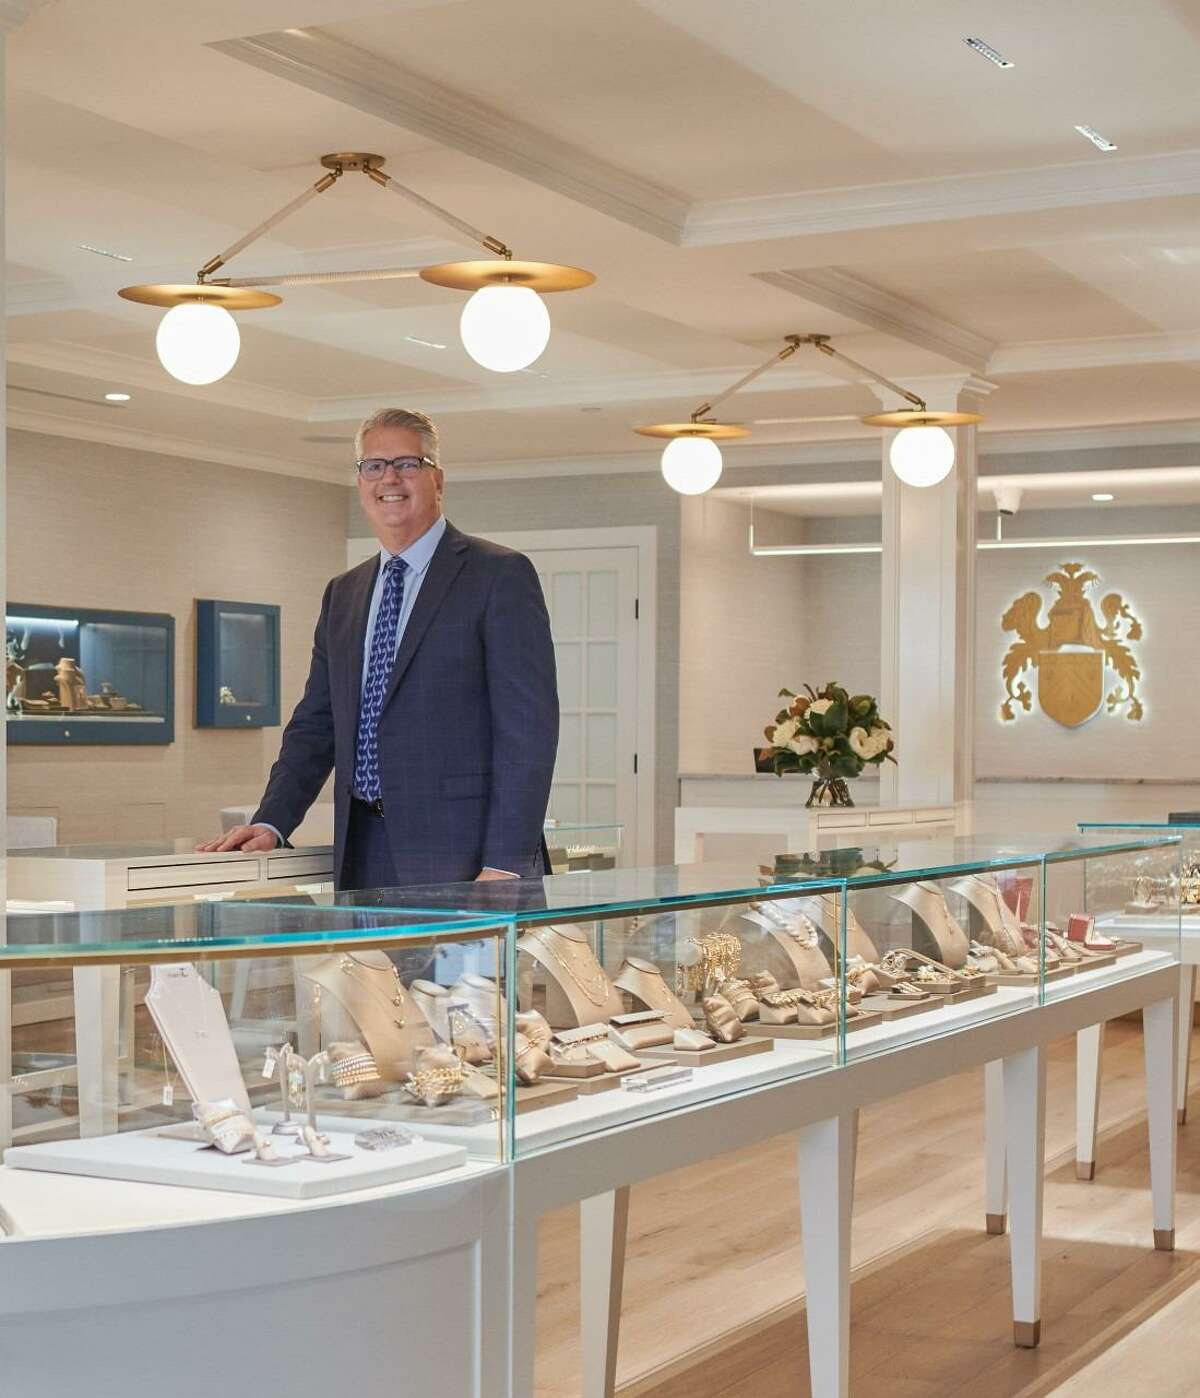 David Glucksman, who is a Fairfield resident, has been appointed store manager of Henry C. Reid & Son Jewelers, the 111-year-old jewelry store that is located at 1591 Post Road in Fairfield.